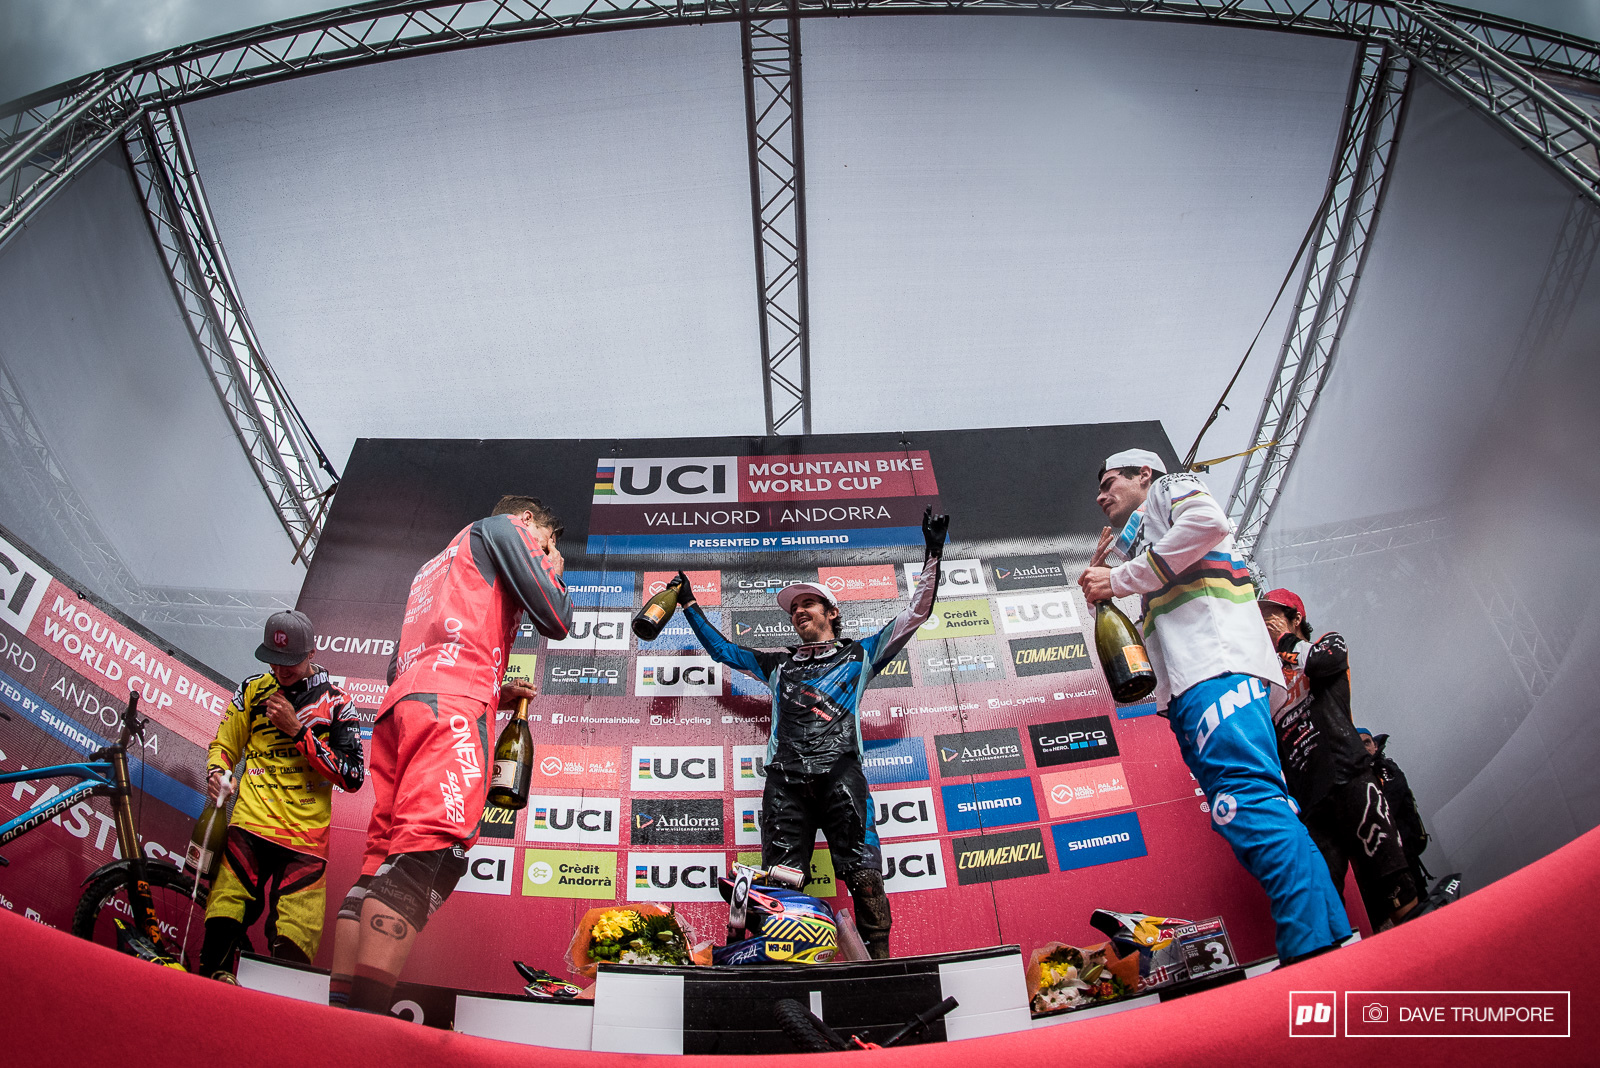 Danny hart makes it three wins in a row. Can he make it four next week at World Champs in Val di Sole